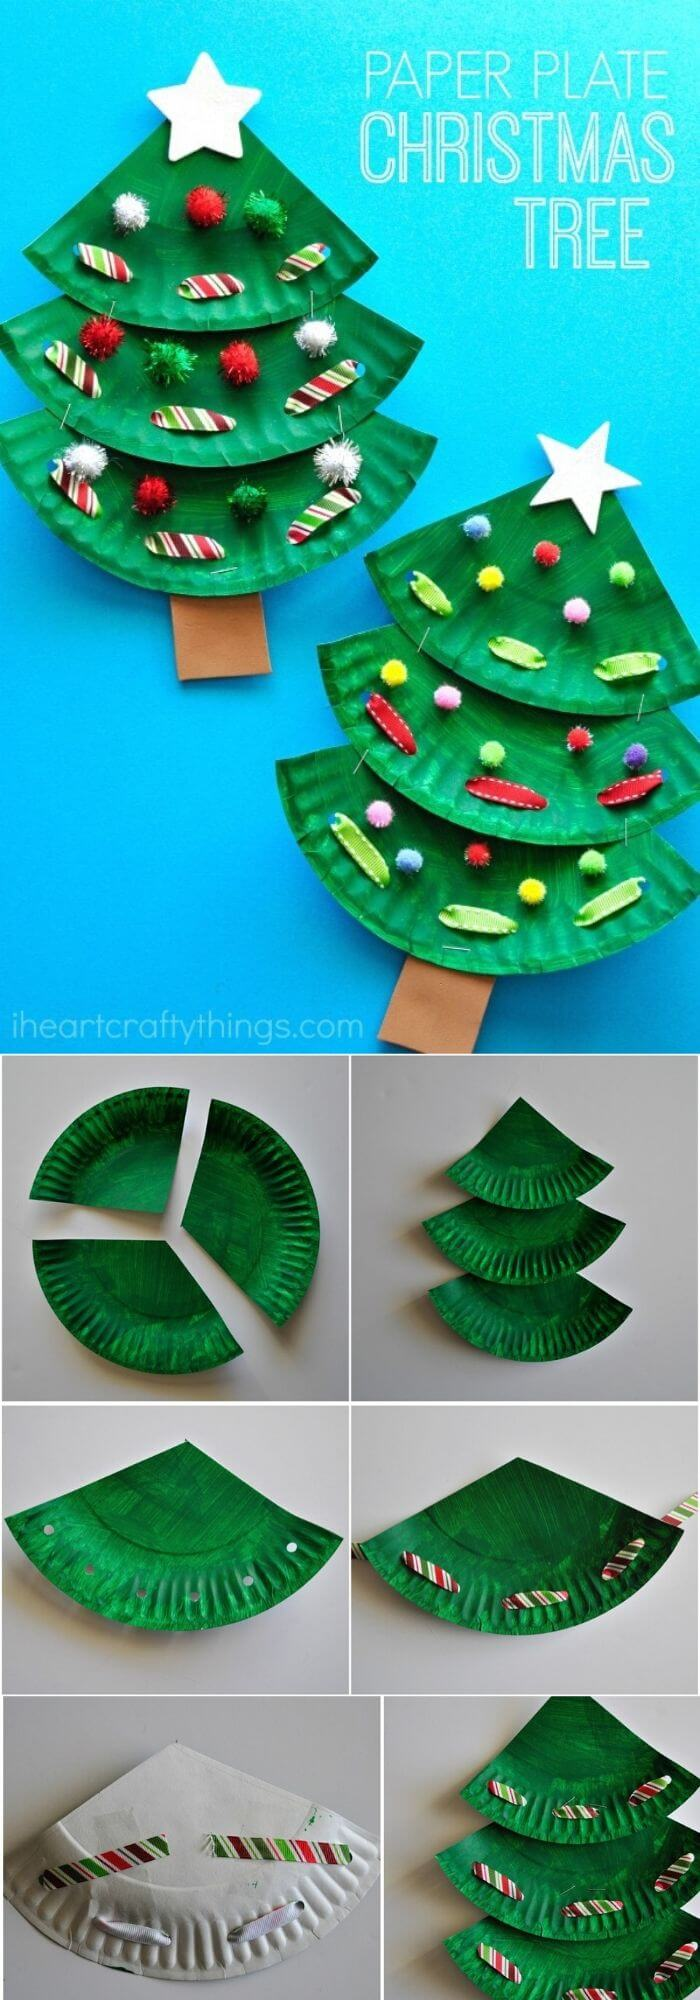 Paper Plate Christmas Tree Craft | Easy, Inexpensive, and Creative Christmas Crafts for Kids